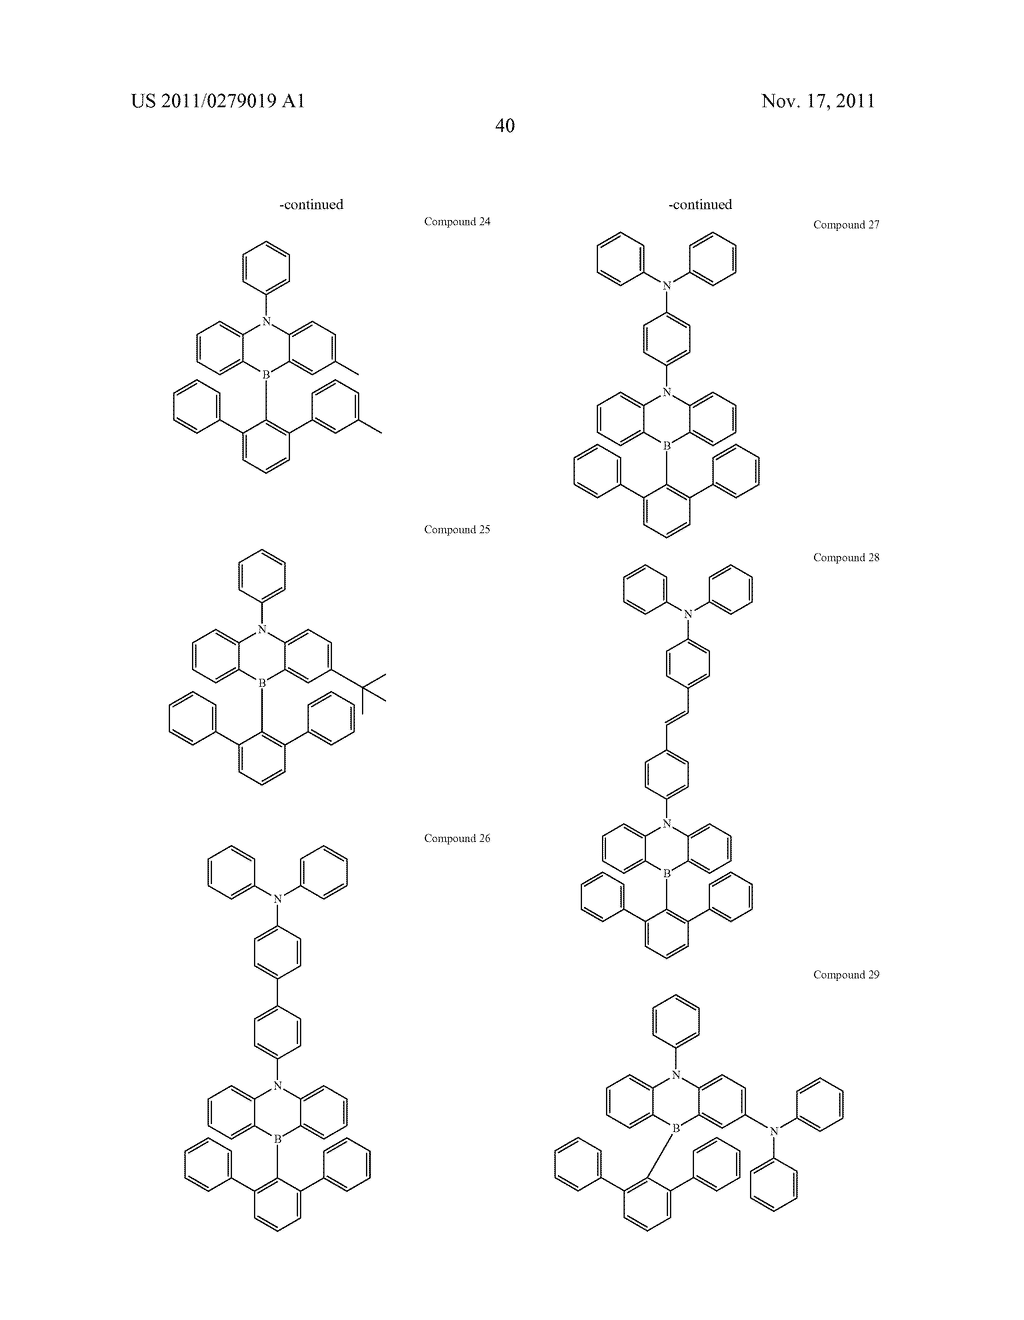 AZABORININE COMPOUNDS AS HOST MATERIALS AND DOPANTS FOR PHOLEDS - diagram, schematic, and image 47